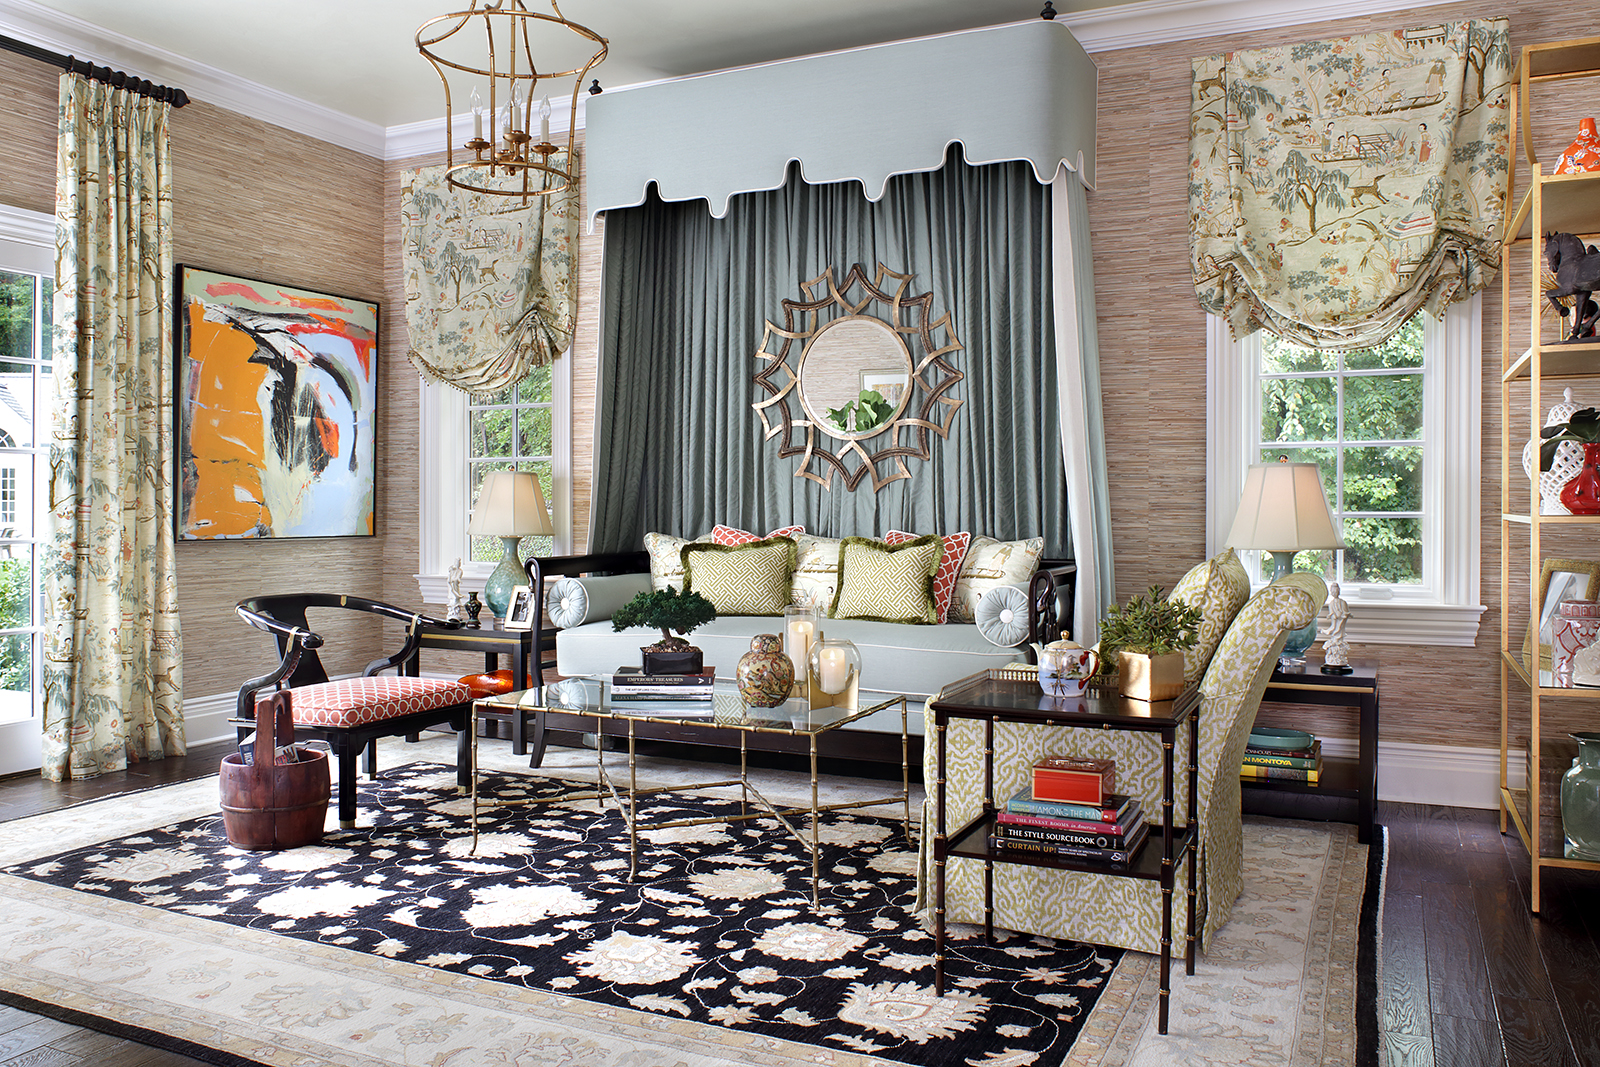 Showhouse for Heroe s - 2016